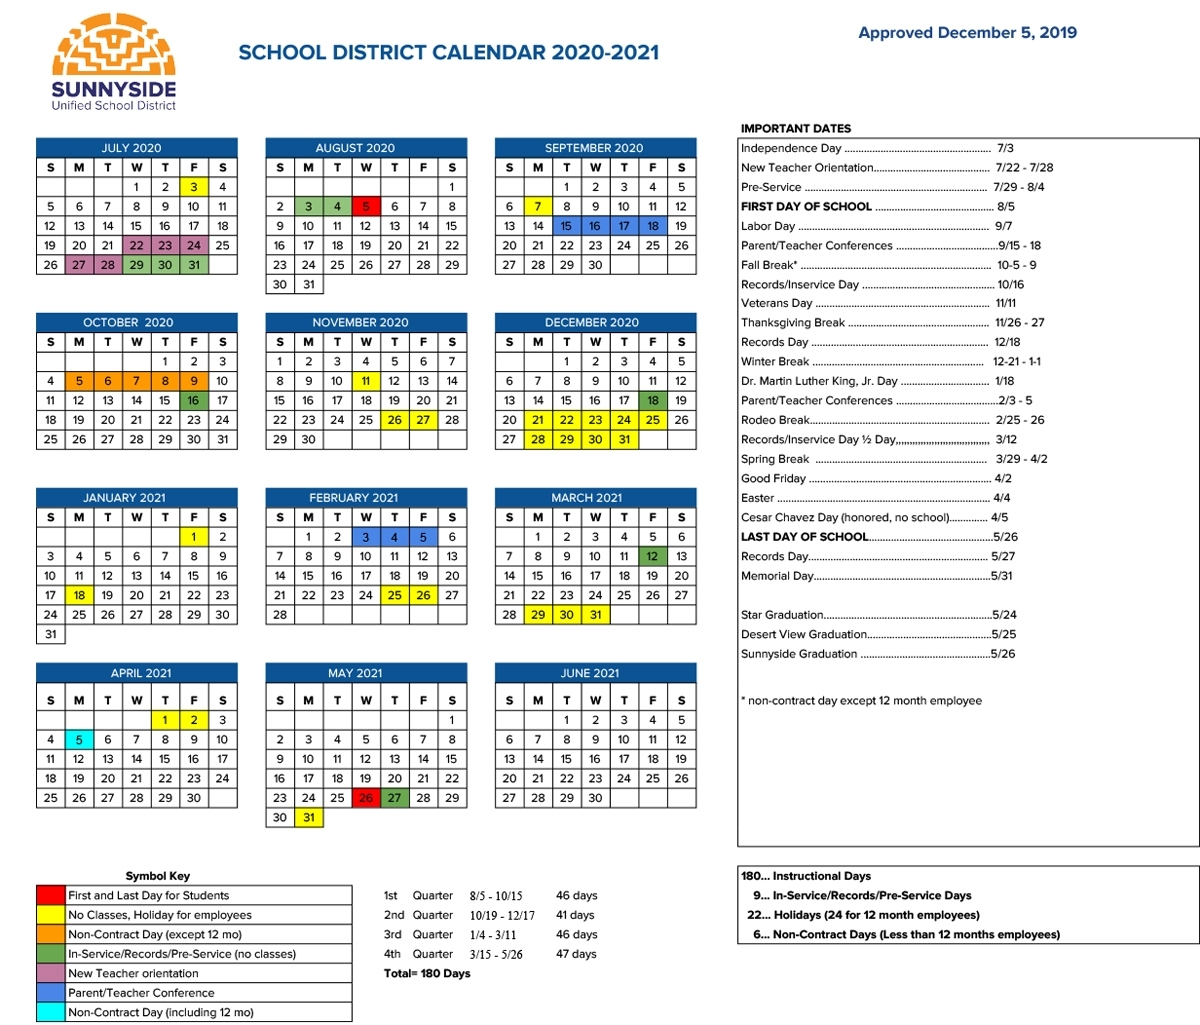 School District 8 2020 Calendar